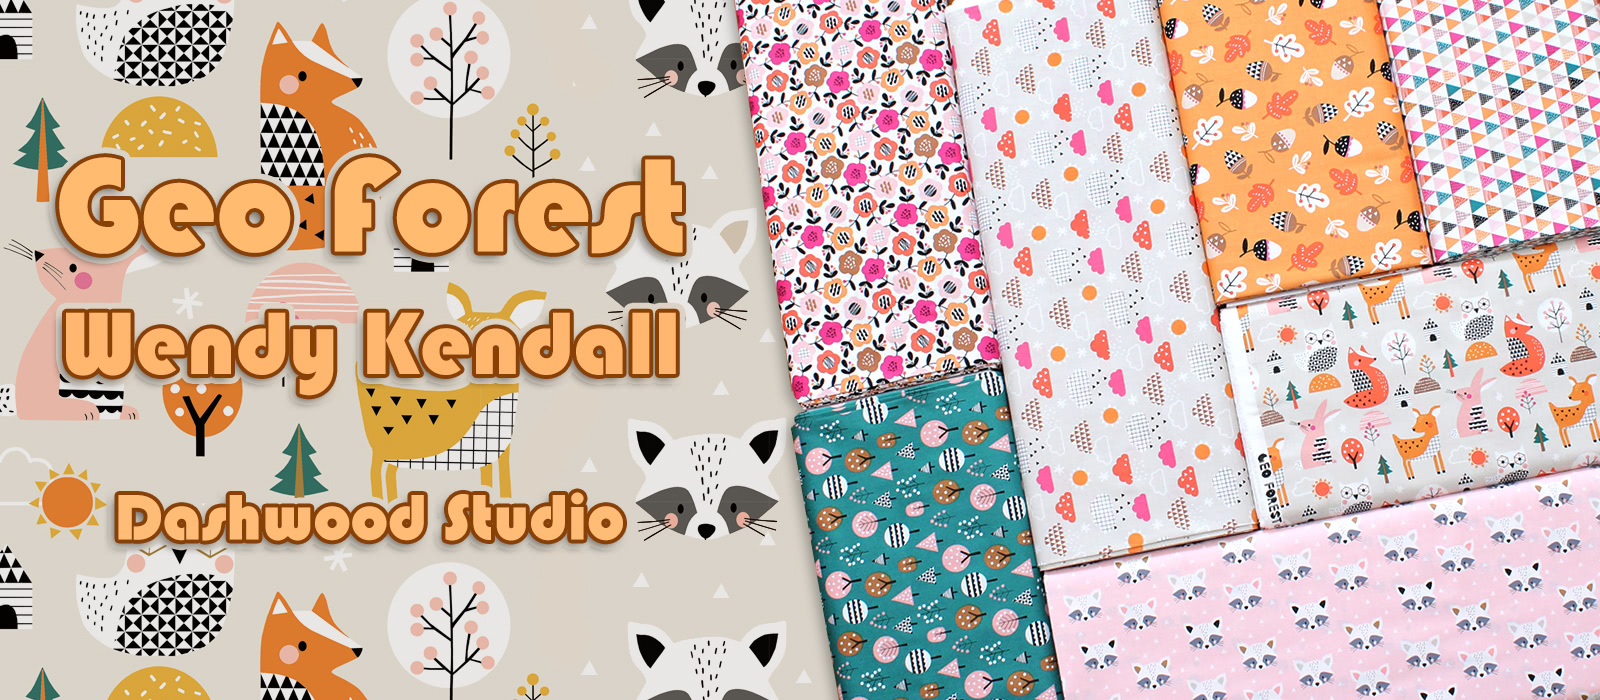 Dashwood Studio Geo Forest Collection by Wendy Kendall